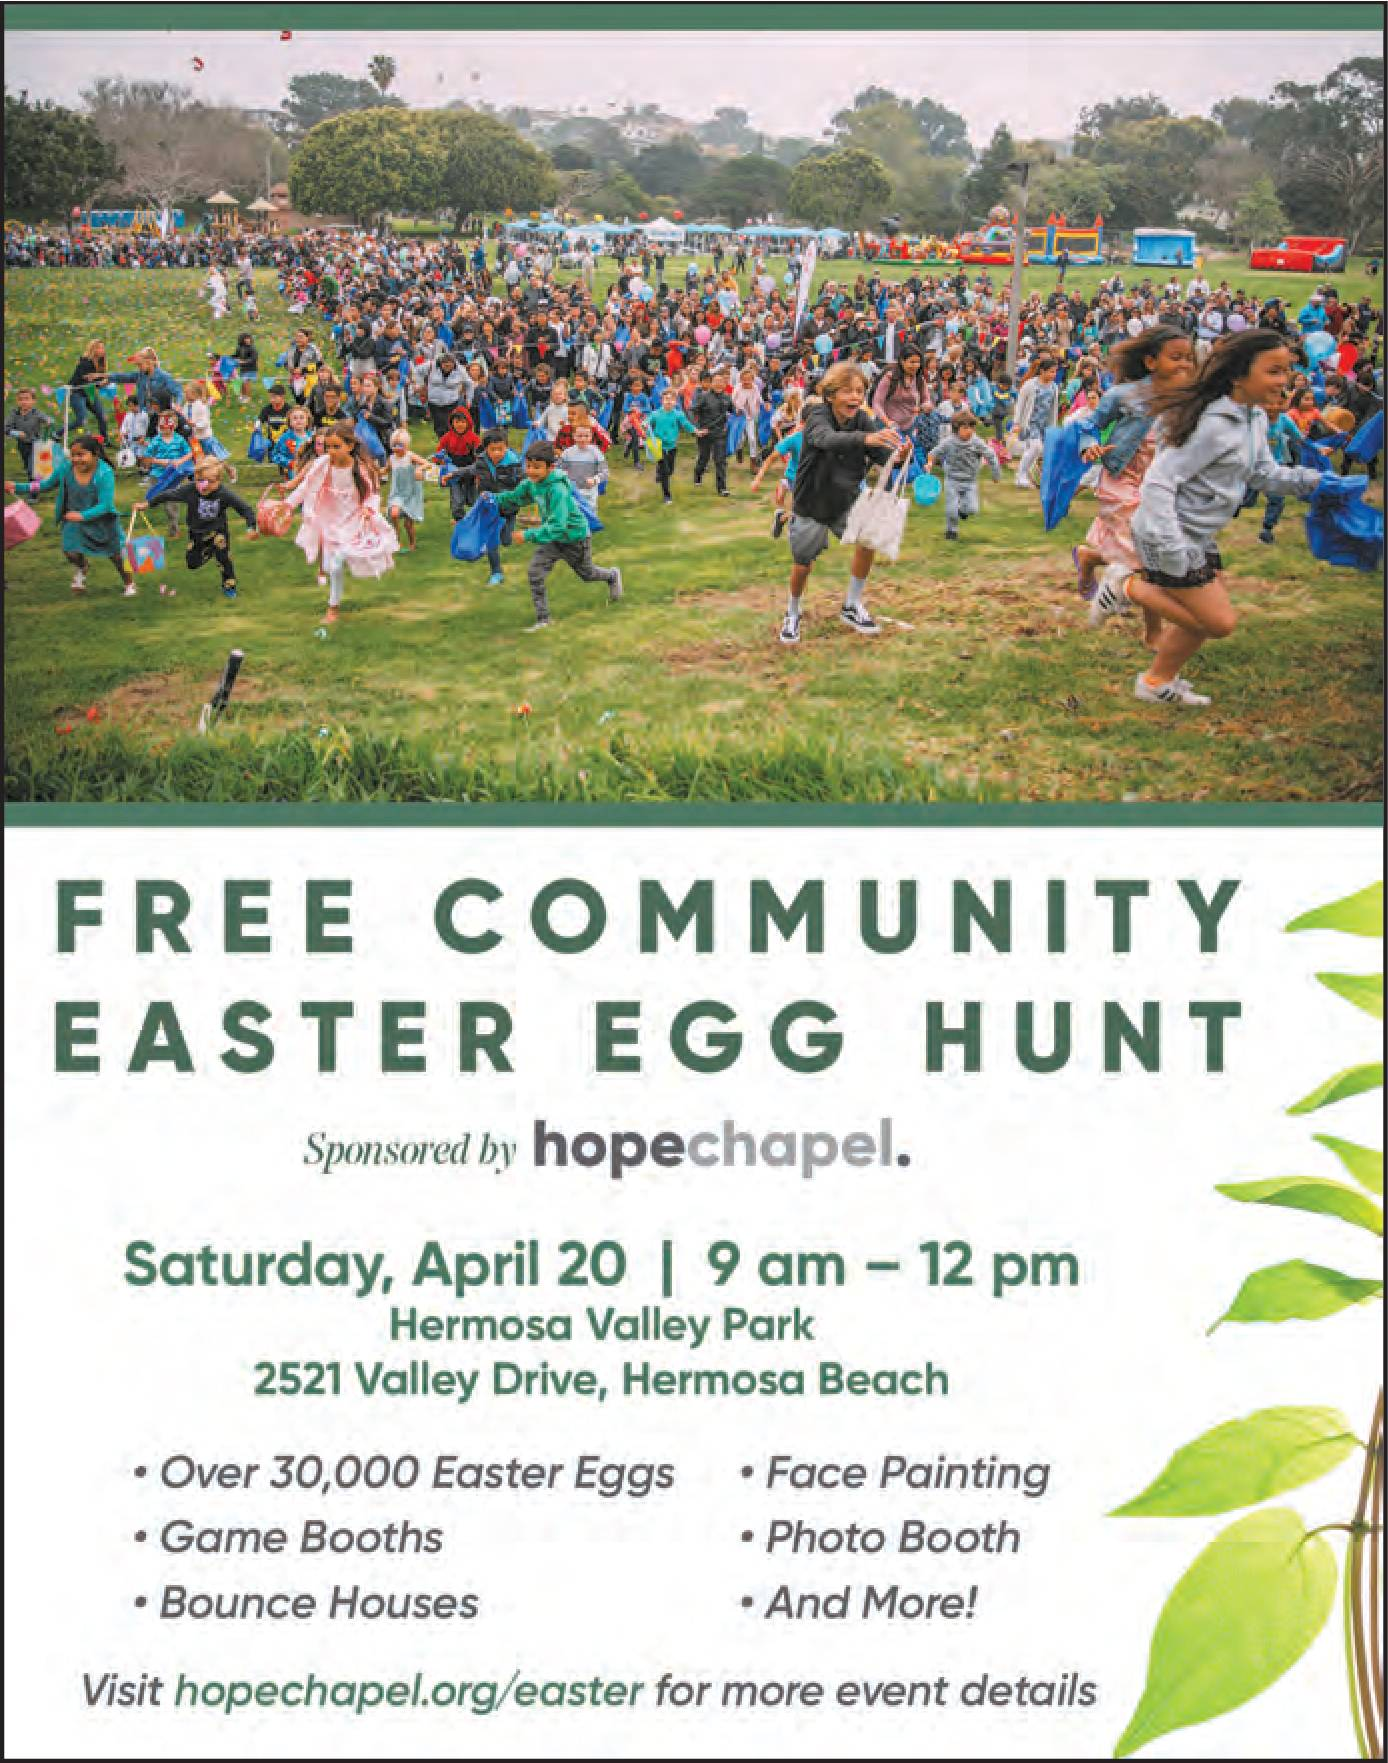 Free Community Easter Egg Hunt @ Hermosa Valley Park | Hermosa Beach | California | United States